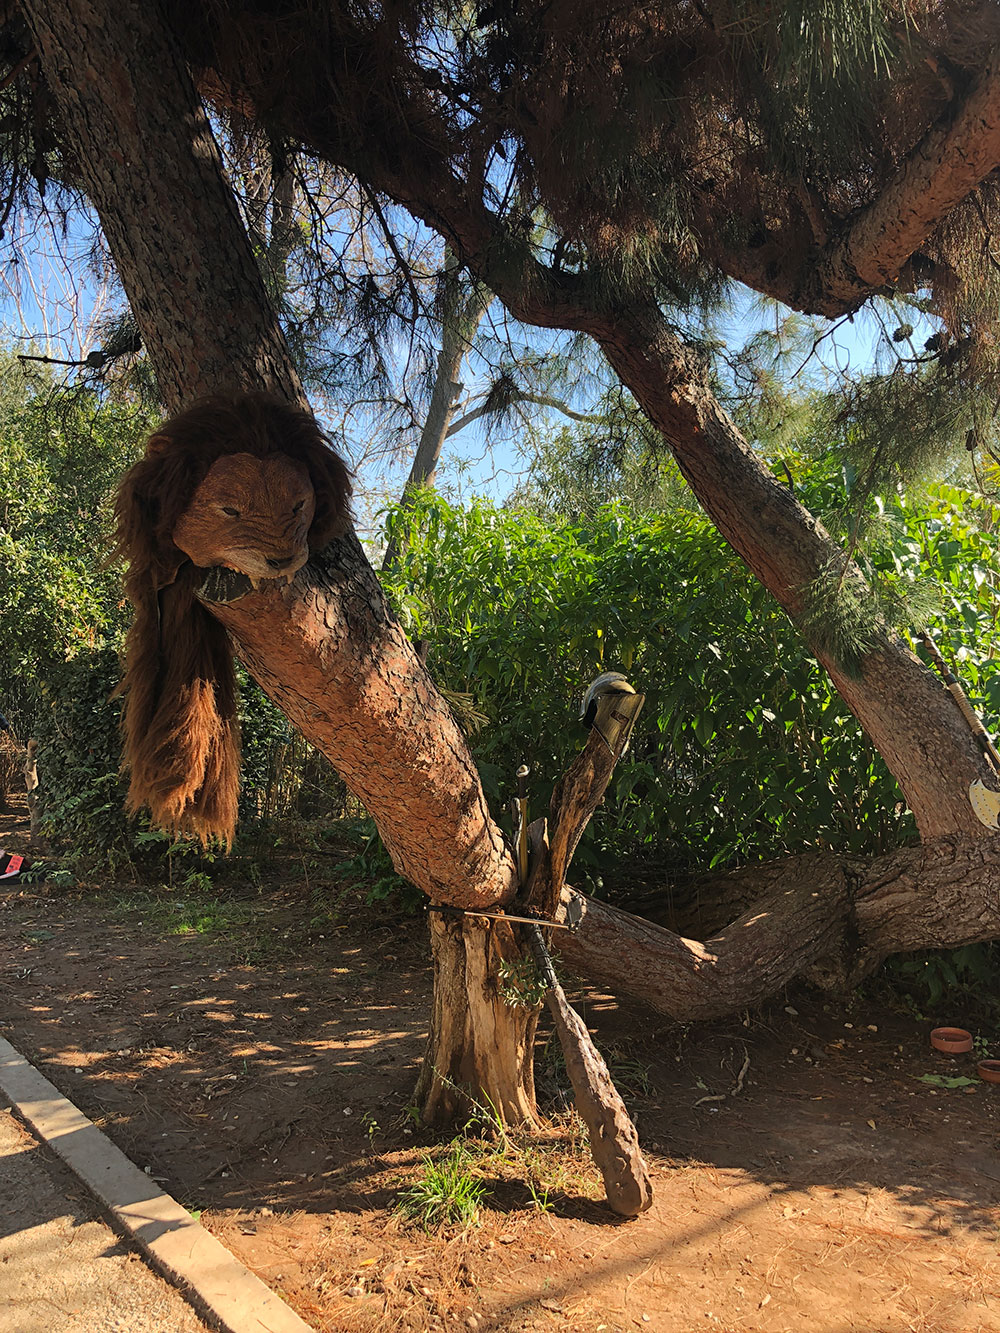 …spot a lion basking in a tree…